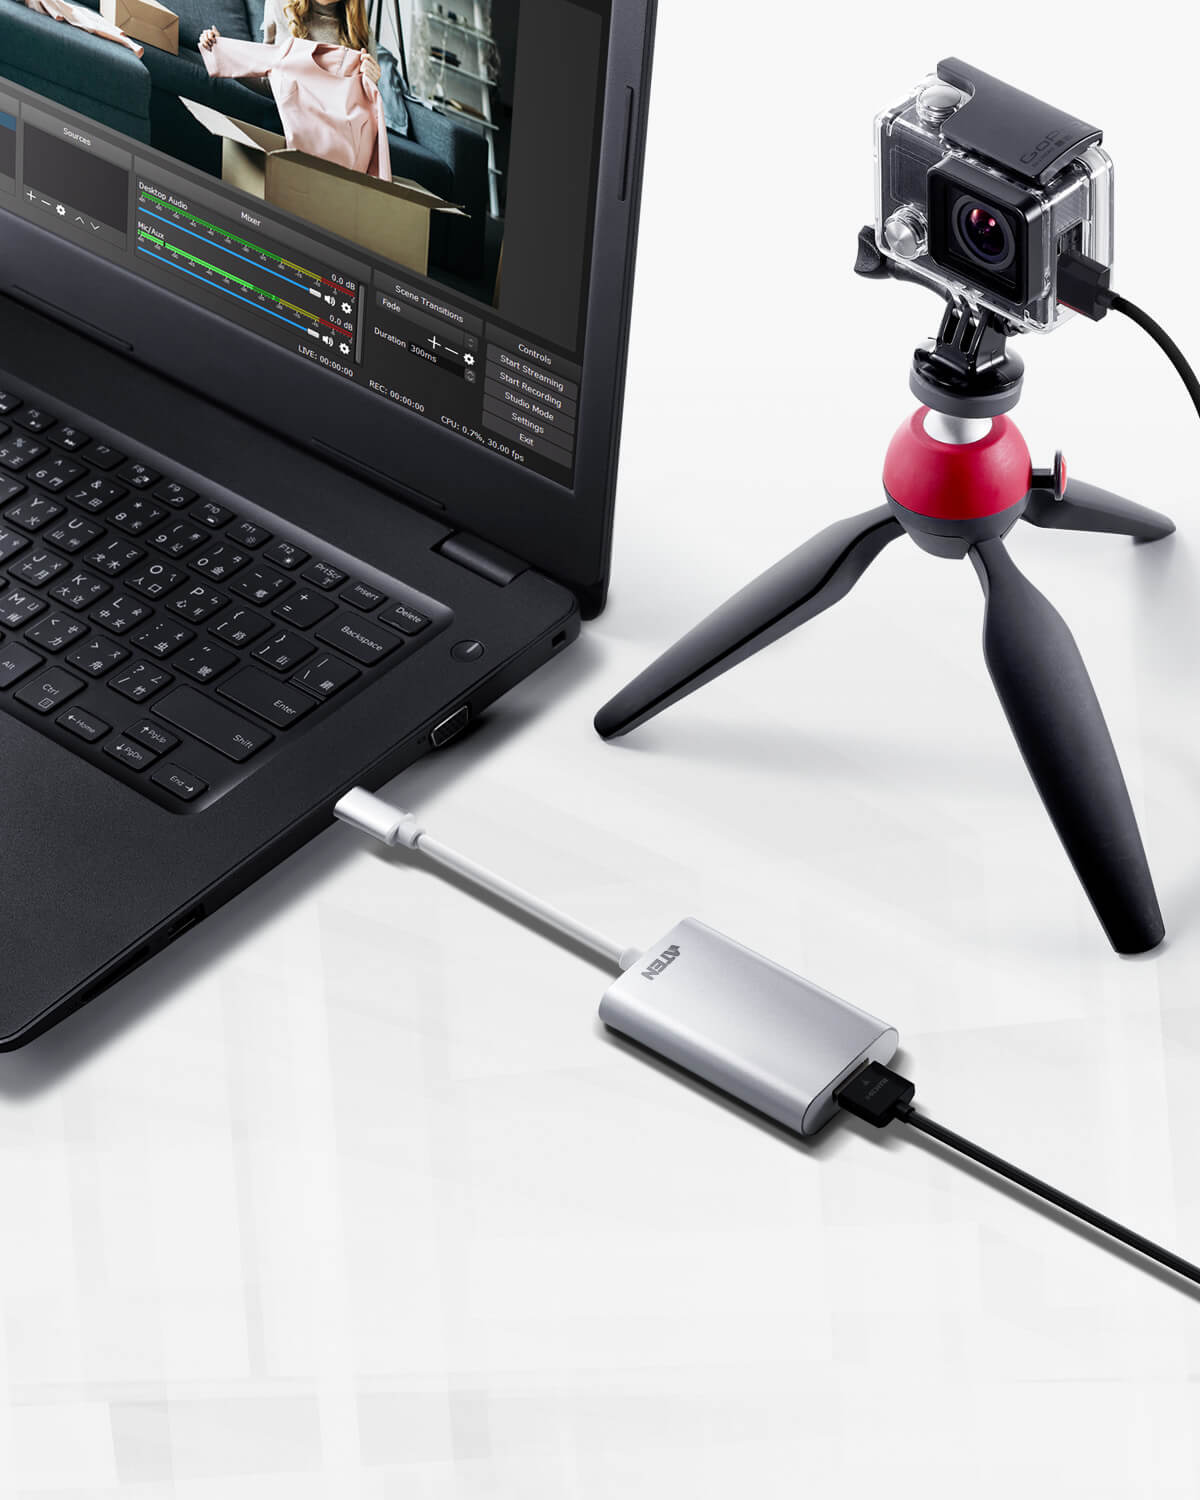 CAMLIVE™ (HDMI to USB-C UVC Video Capture)-5